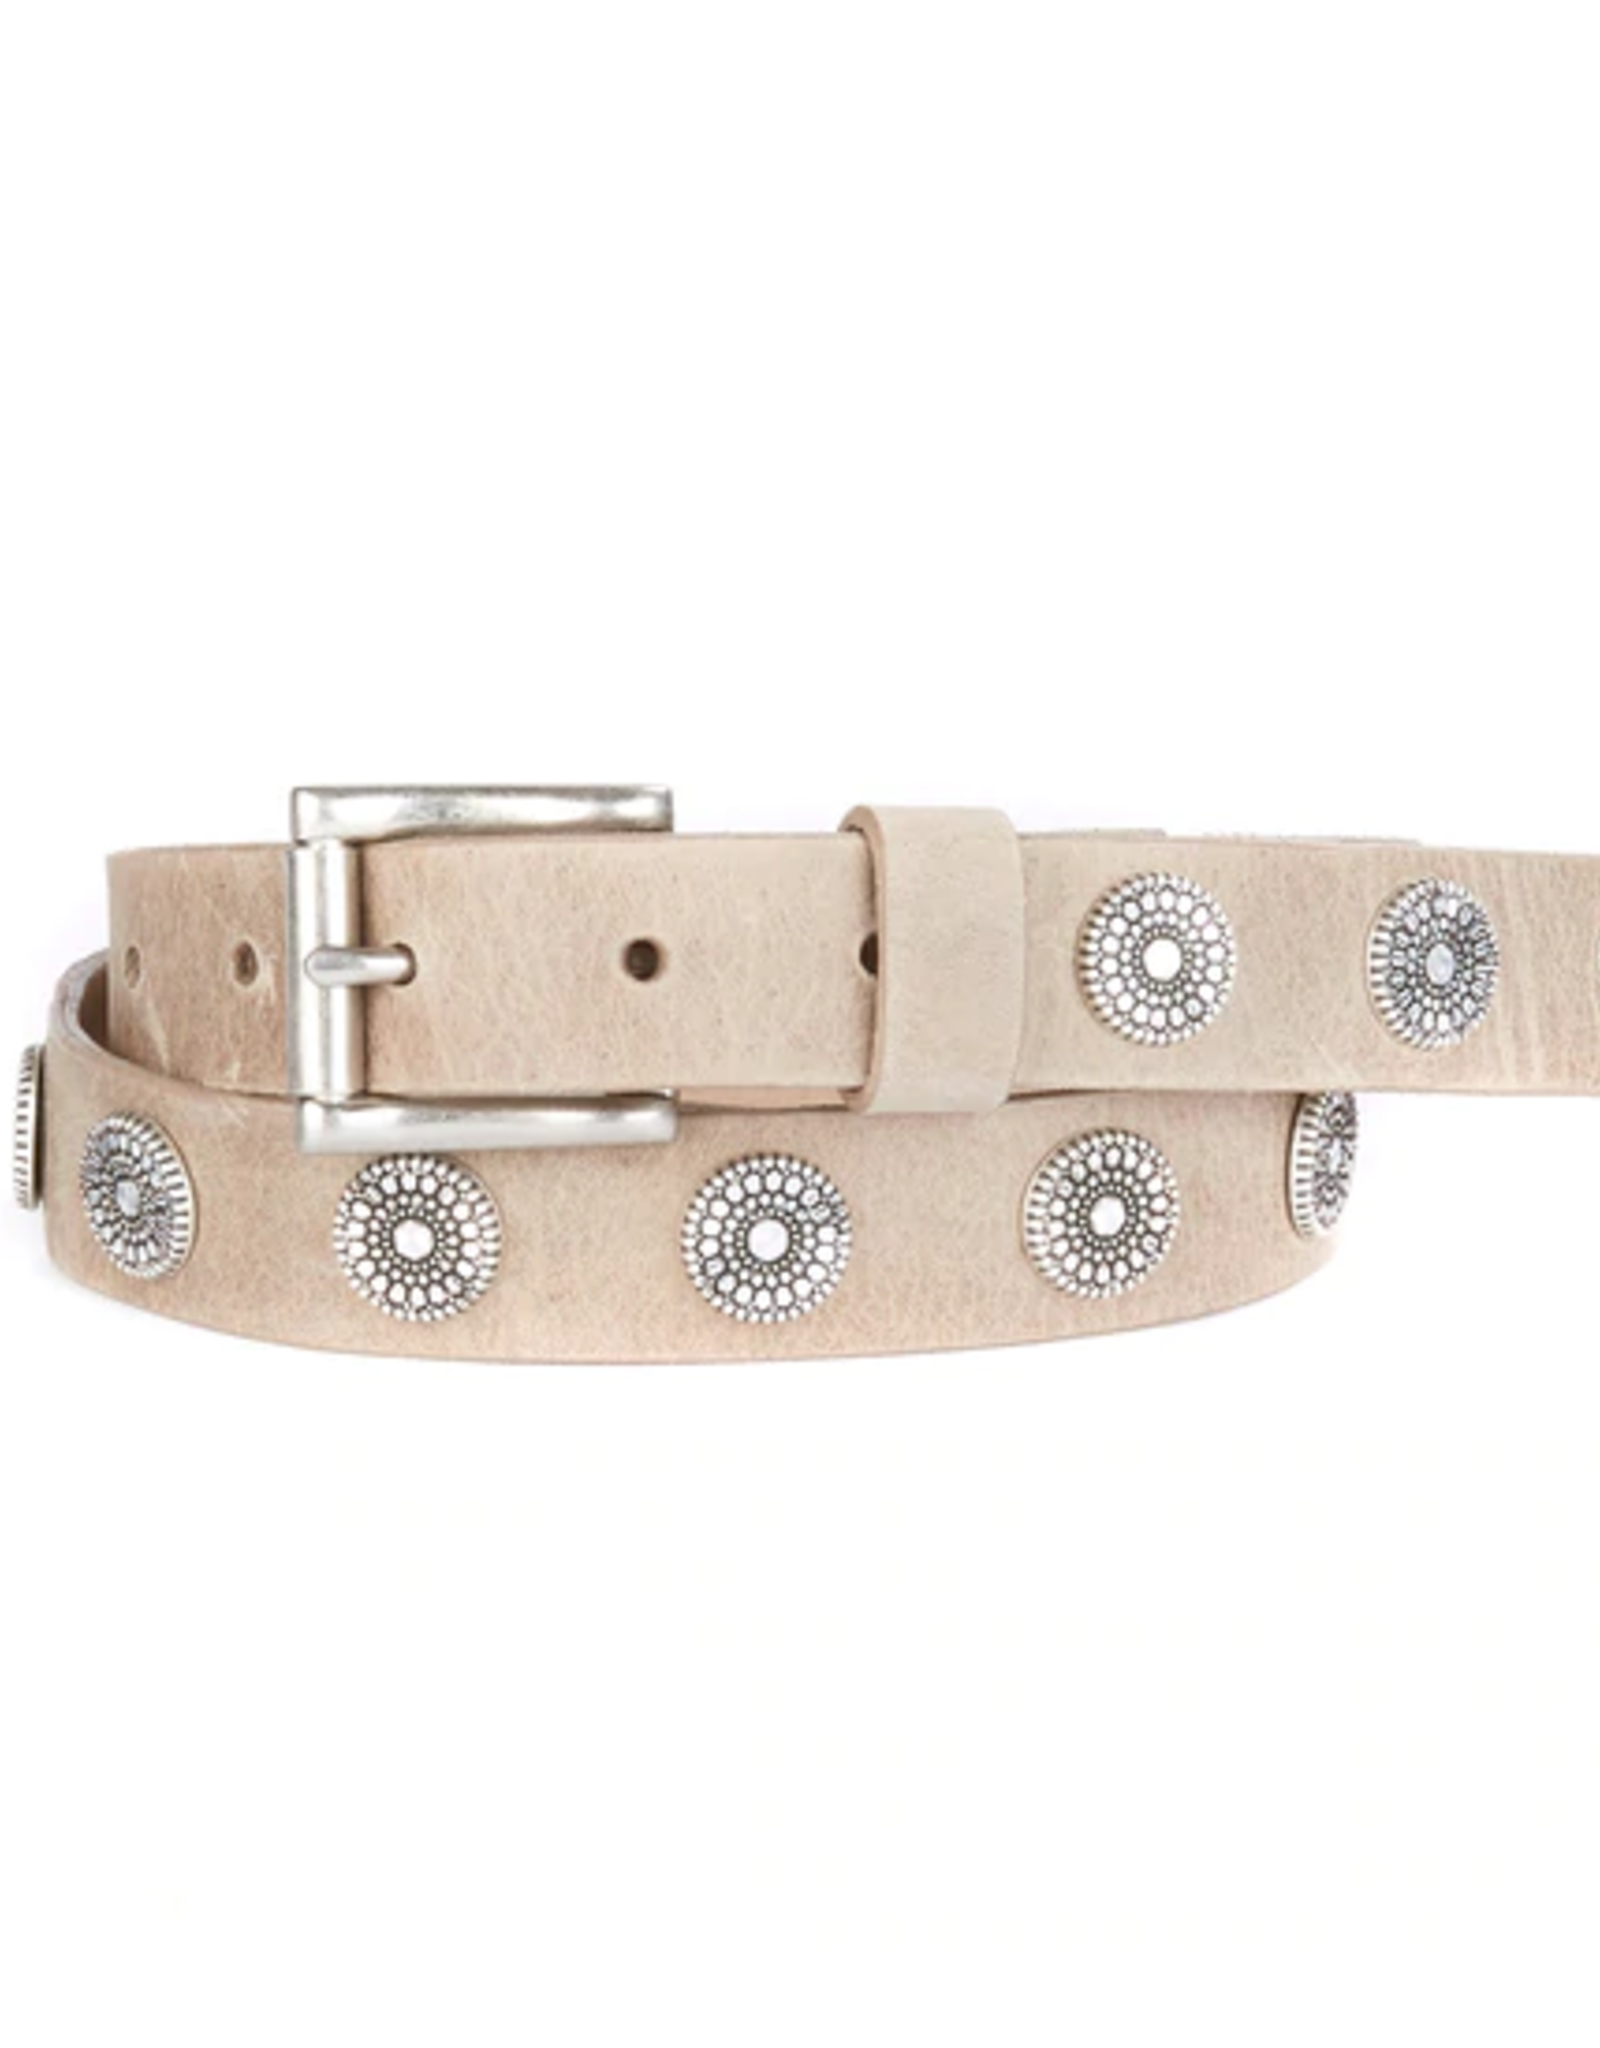 Bellise belt